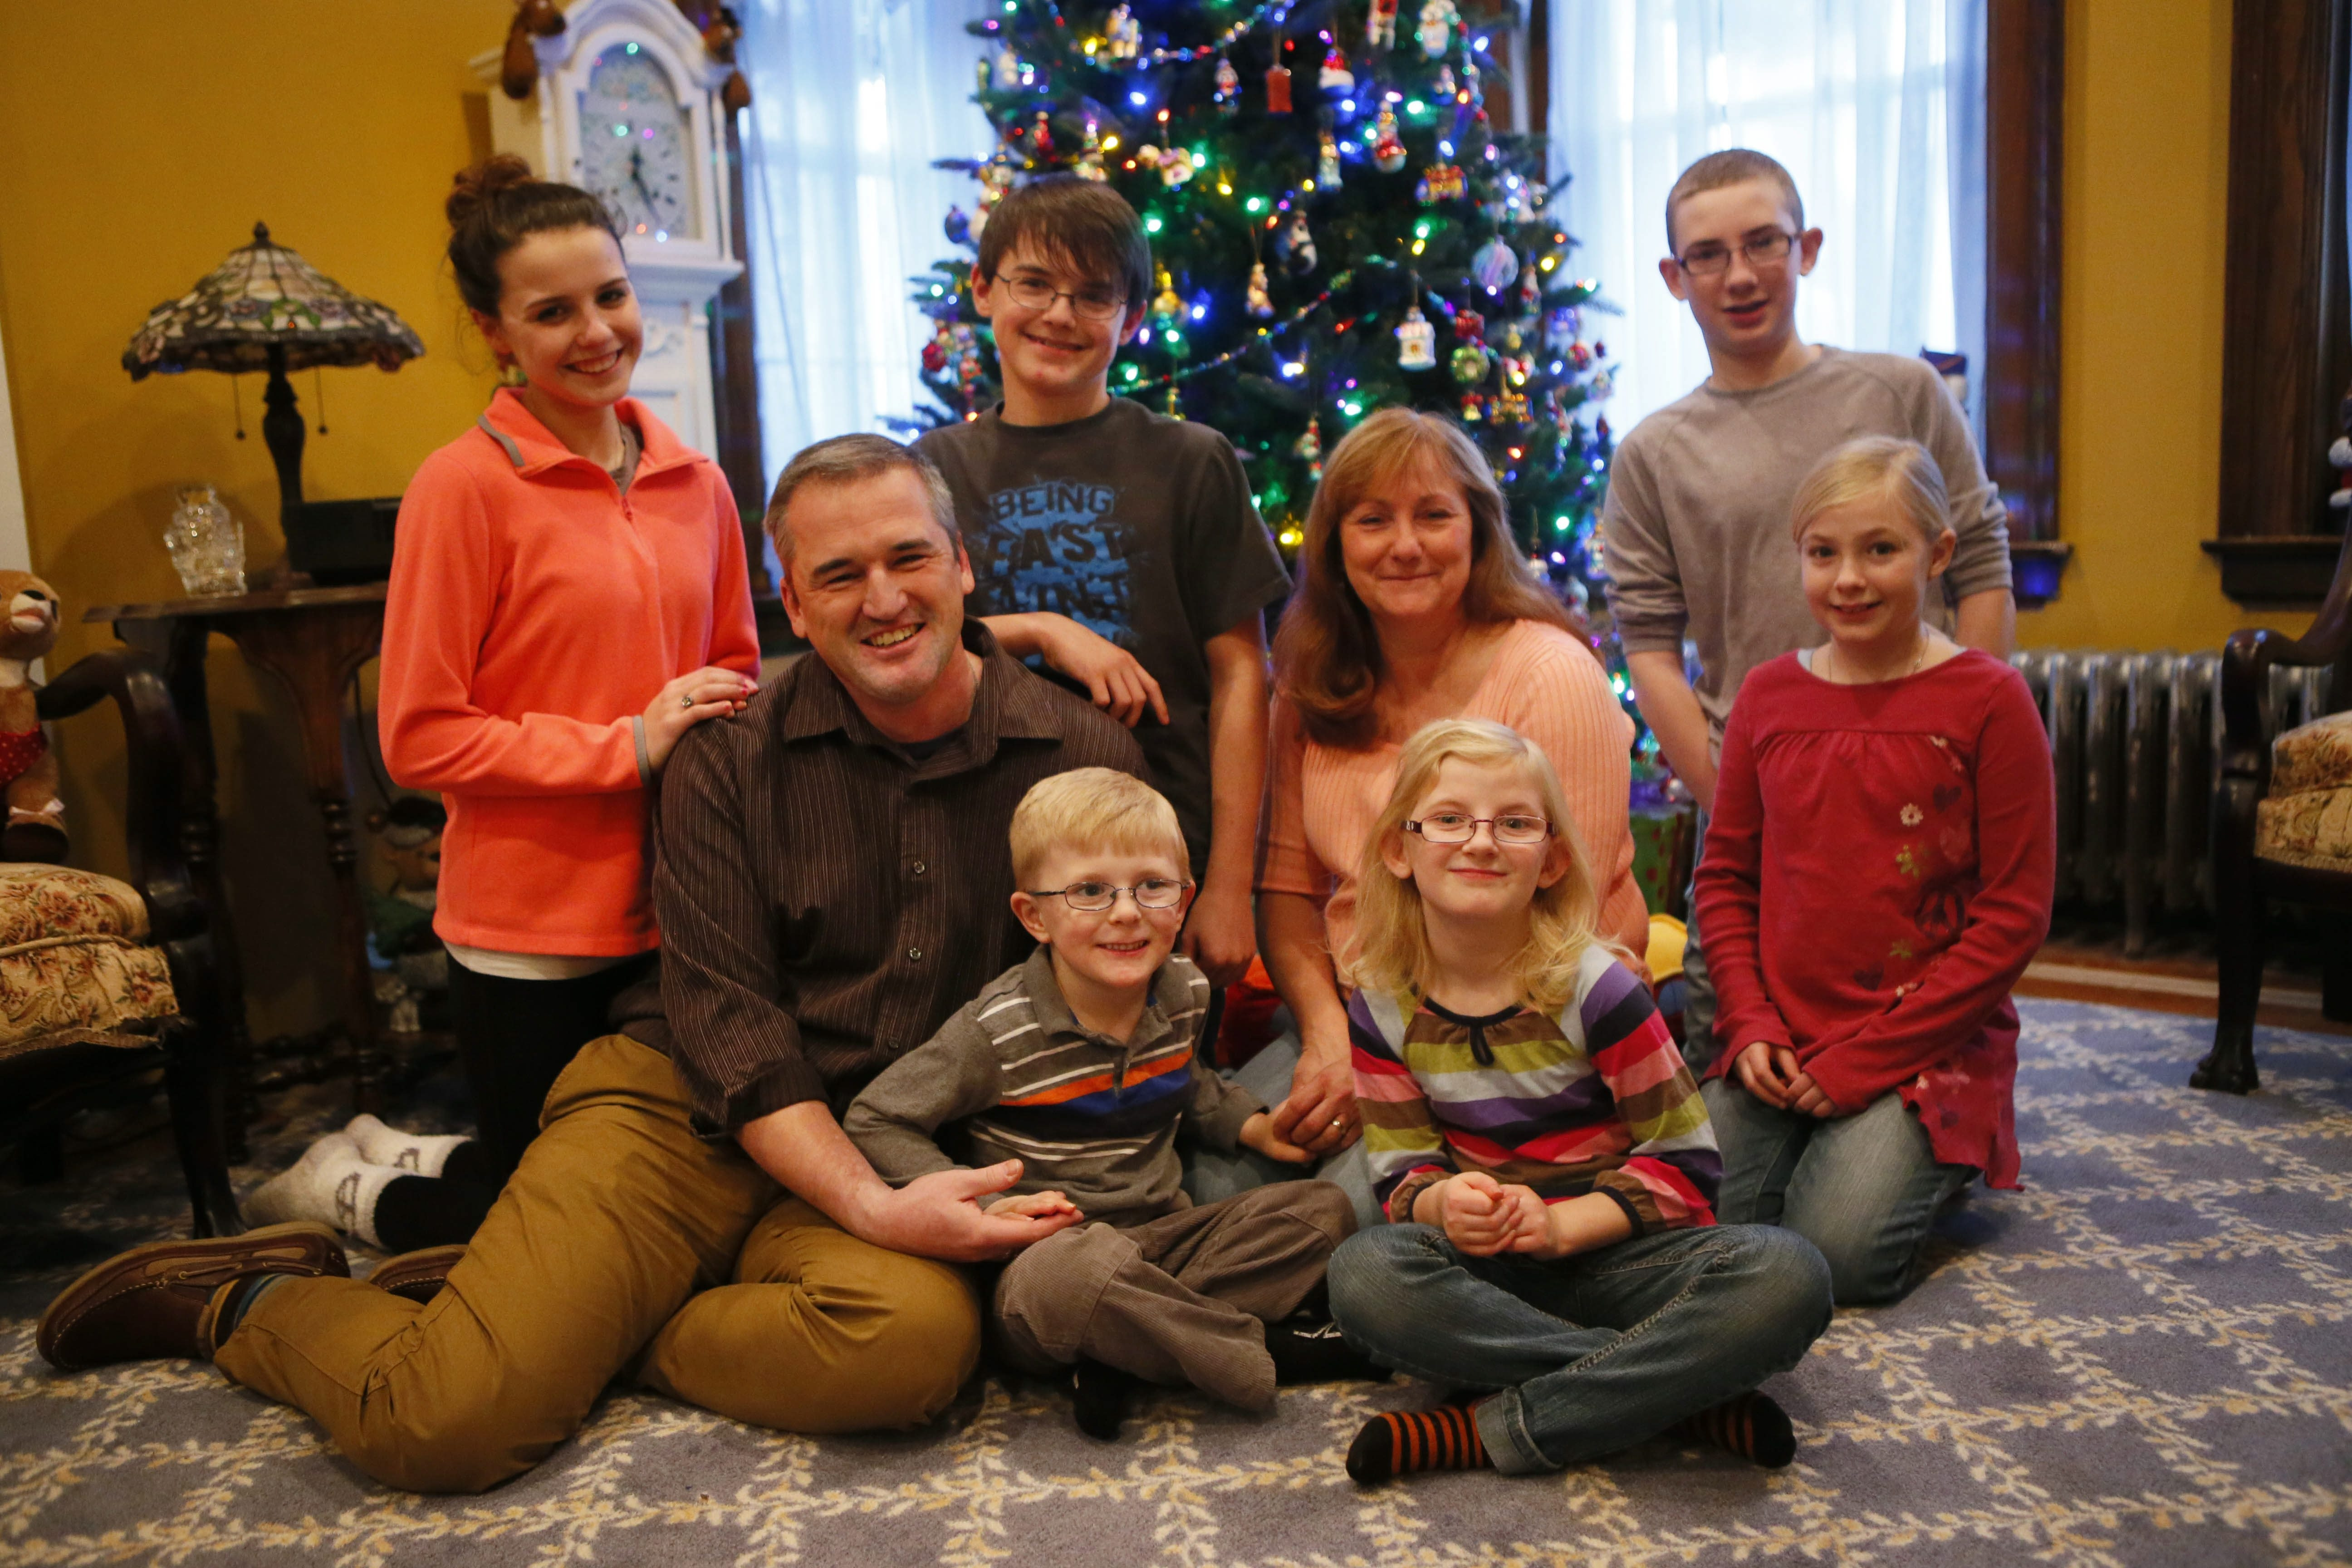 Michael and Elizabeth Sobaszek celebrate with their children Monday.  The kids are, back row, from left, Gabriella, 16, Zackary, 14, and Lucas, 13; front row, from left,  Thor, 4, Annastasia, 8, and Willow, 10.